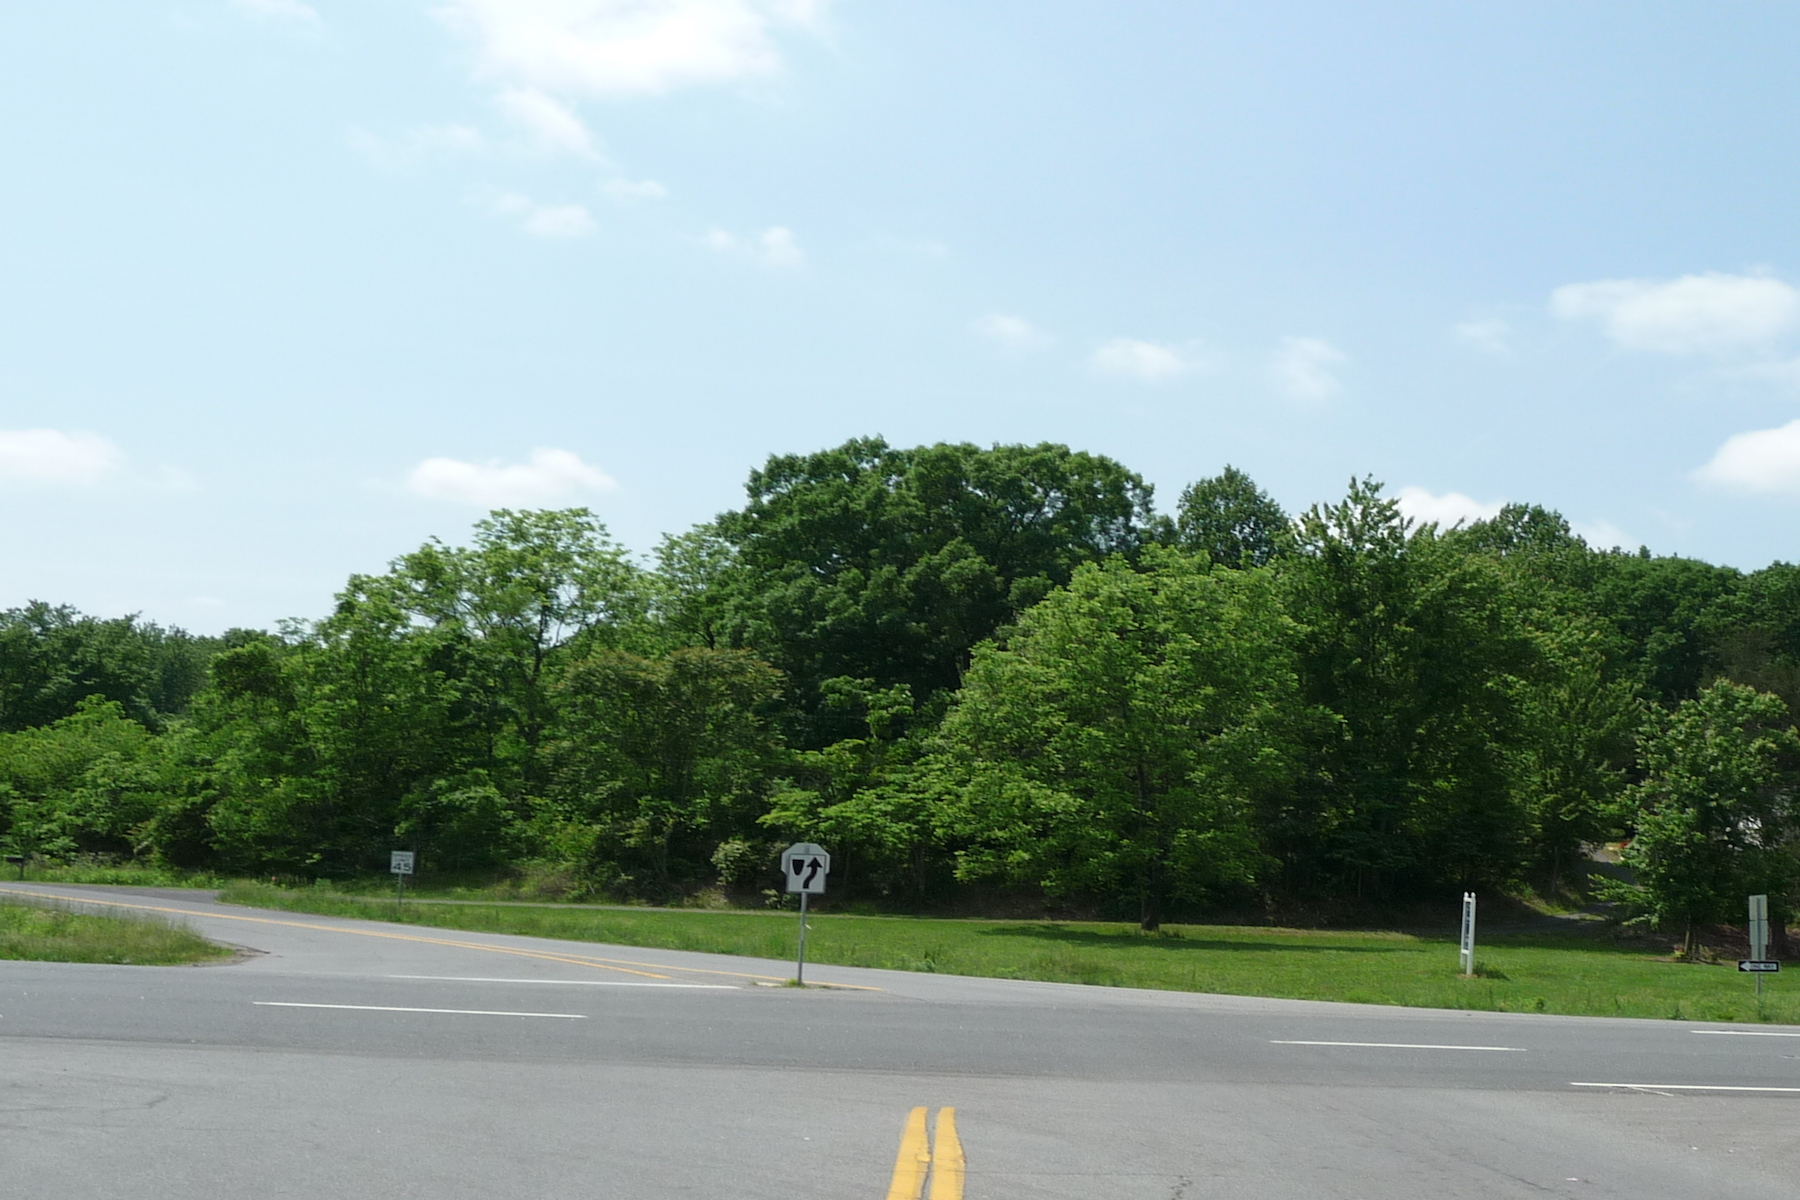 Land for Sale at Route 29 - Commercial Lot - 8304 White Shop Road, Culpeper 8304 White Shop Road Culpeper, Virginia 22701 United States